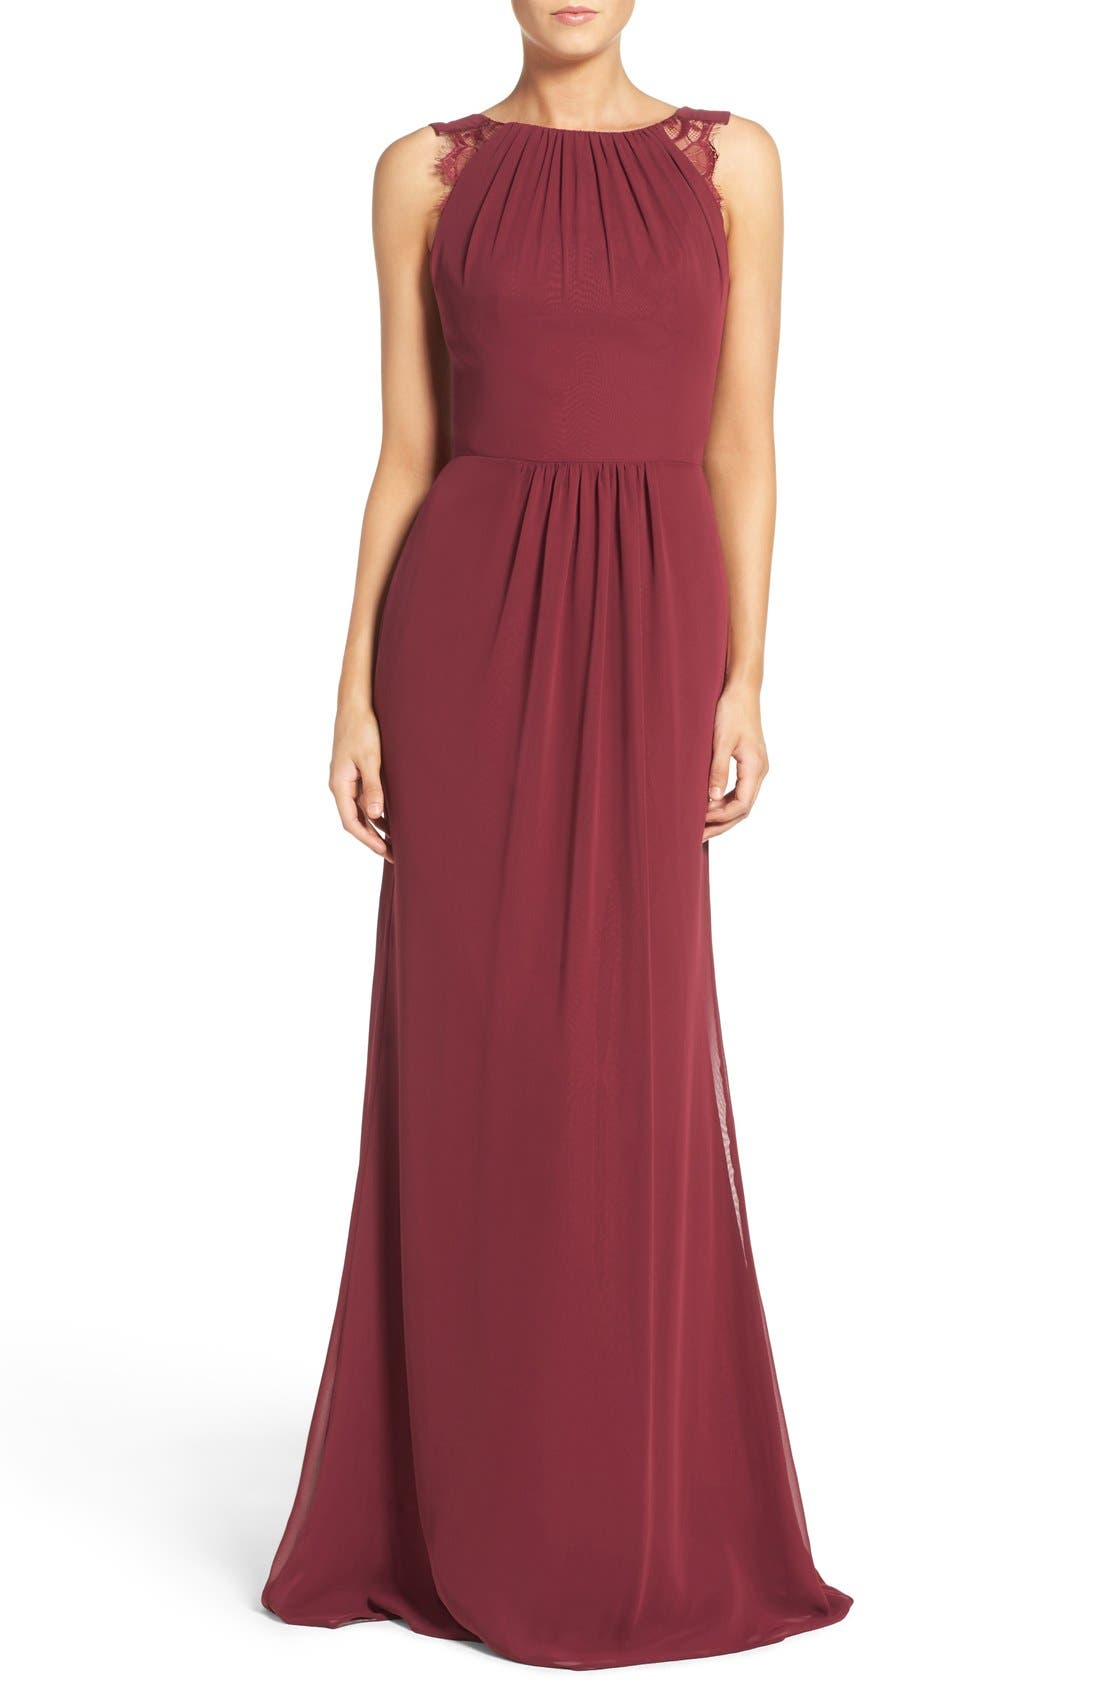 Lace Strap Gathered Chiffon Gown,                             Main thumbnail 1, color,                             Burgundy/ Burgundy